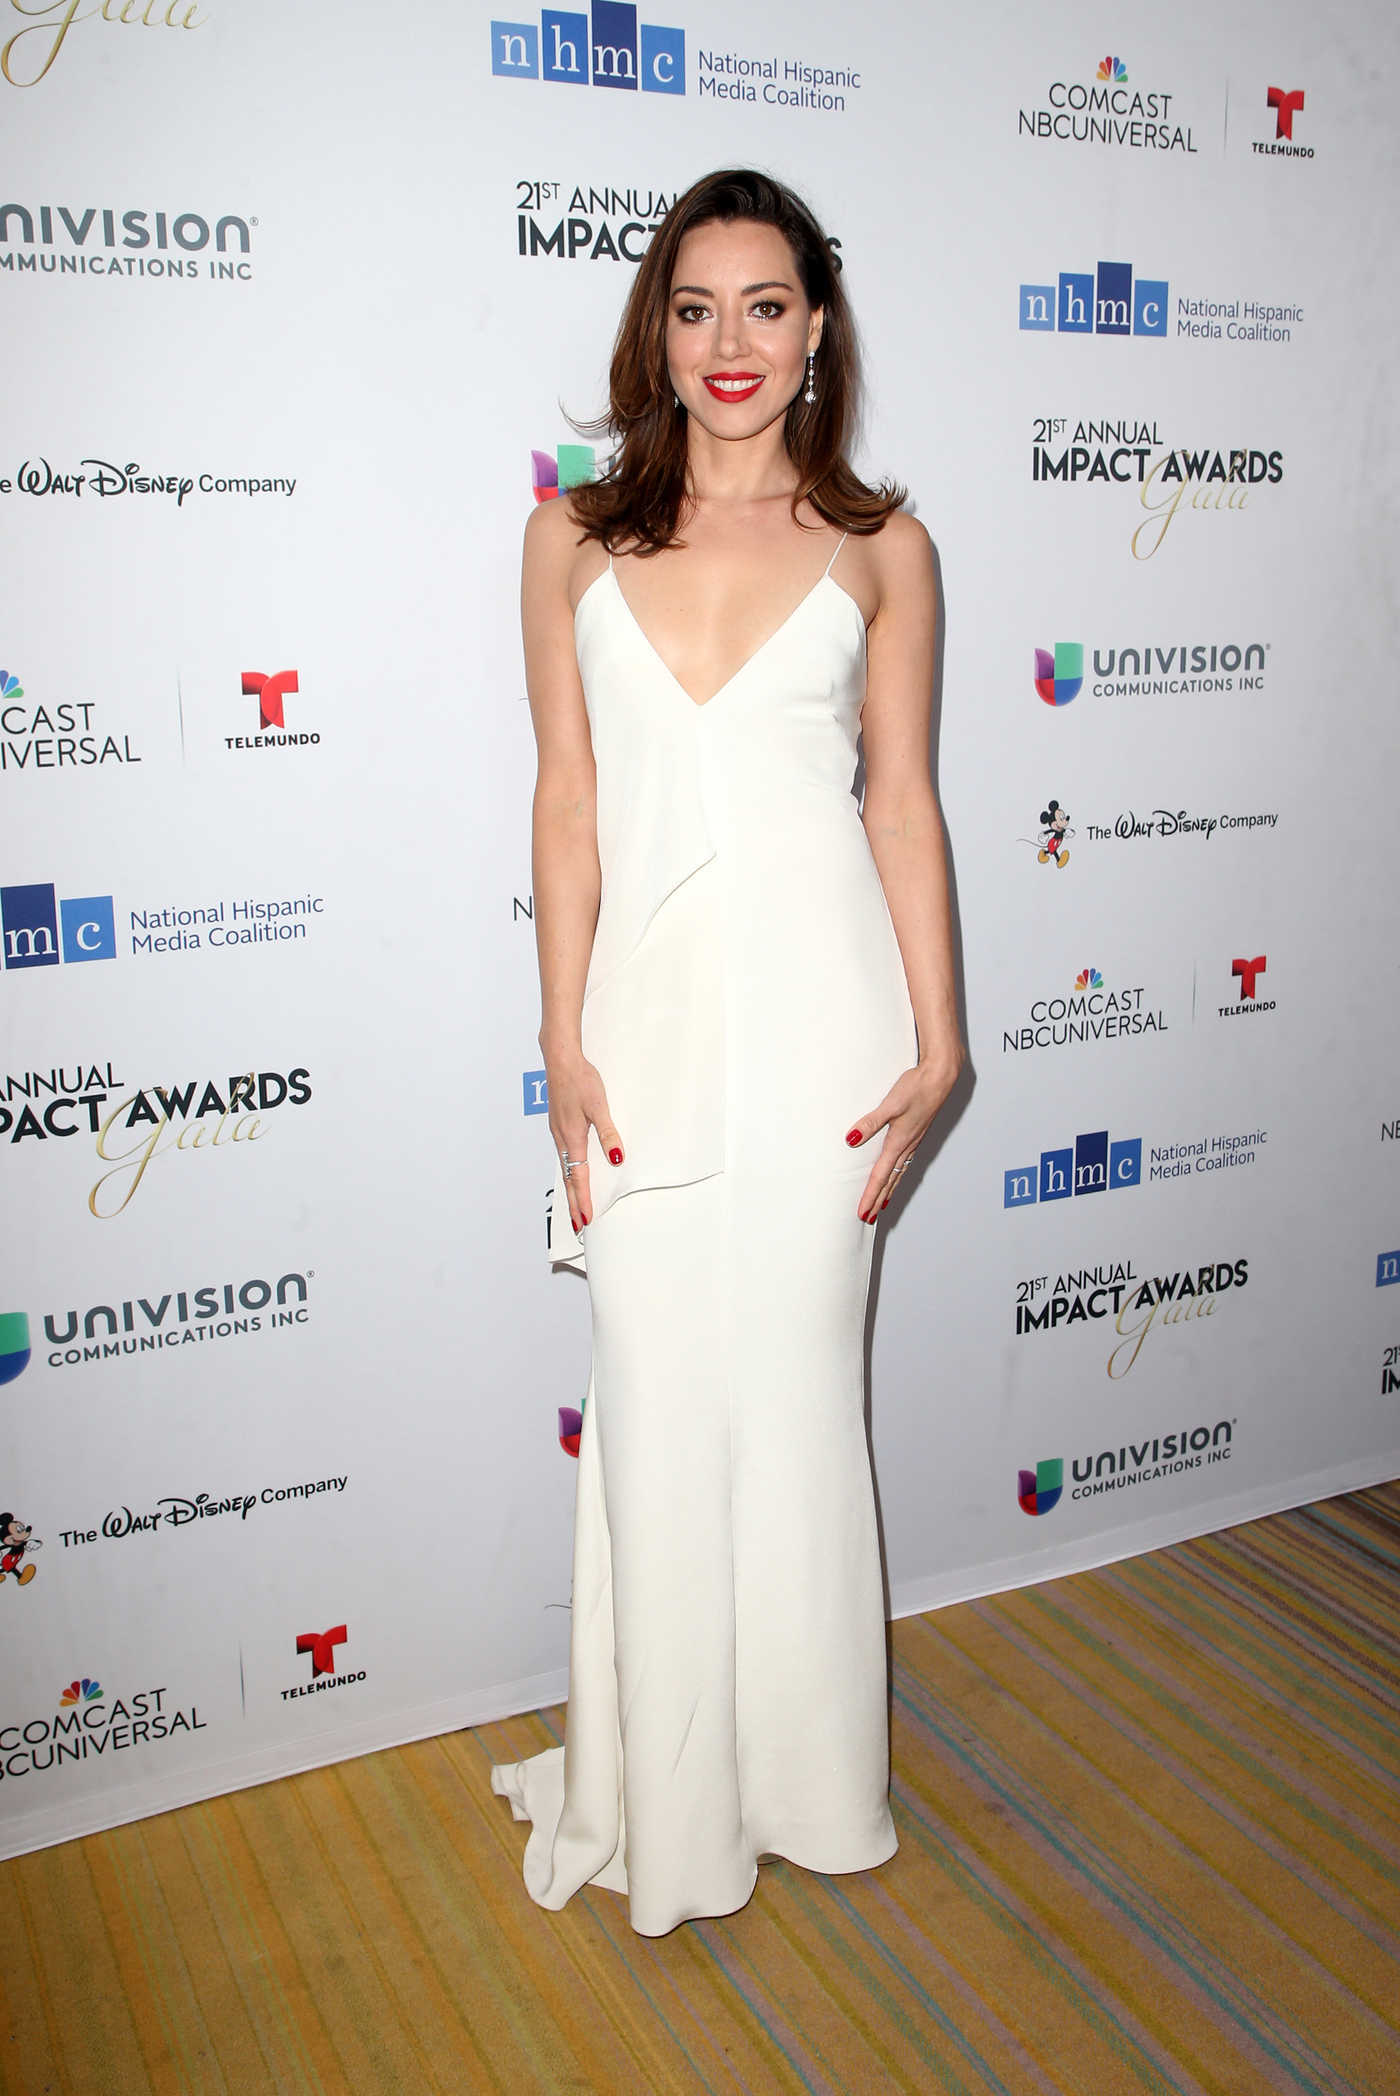 Aubrey Plaza at the 21th Annual National Hispanic Media Coalition Impact Awards Gala in Beverly Hills 02/23/2018